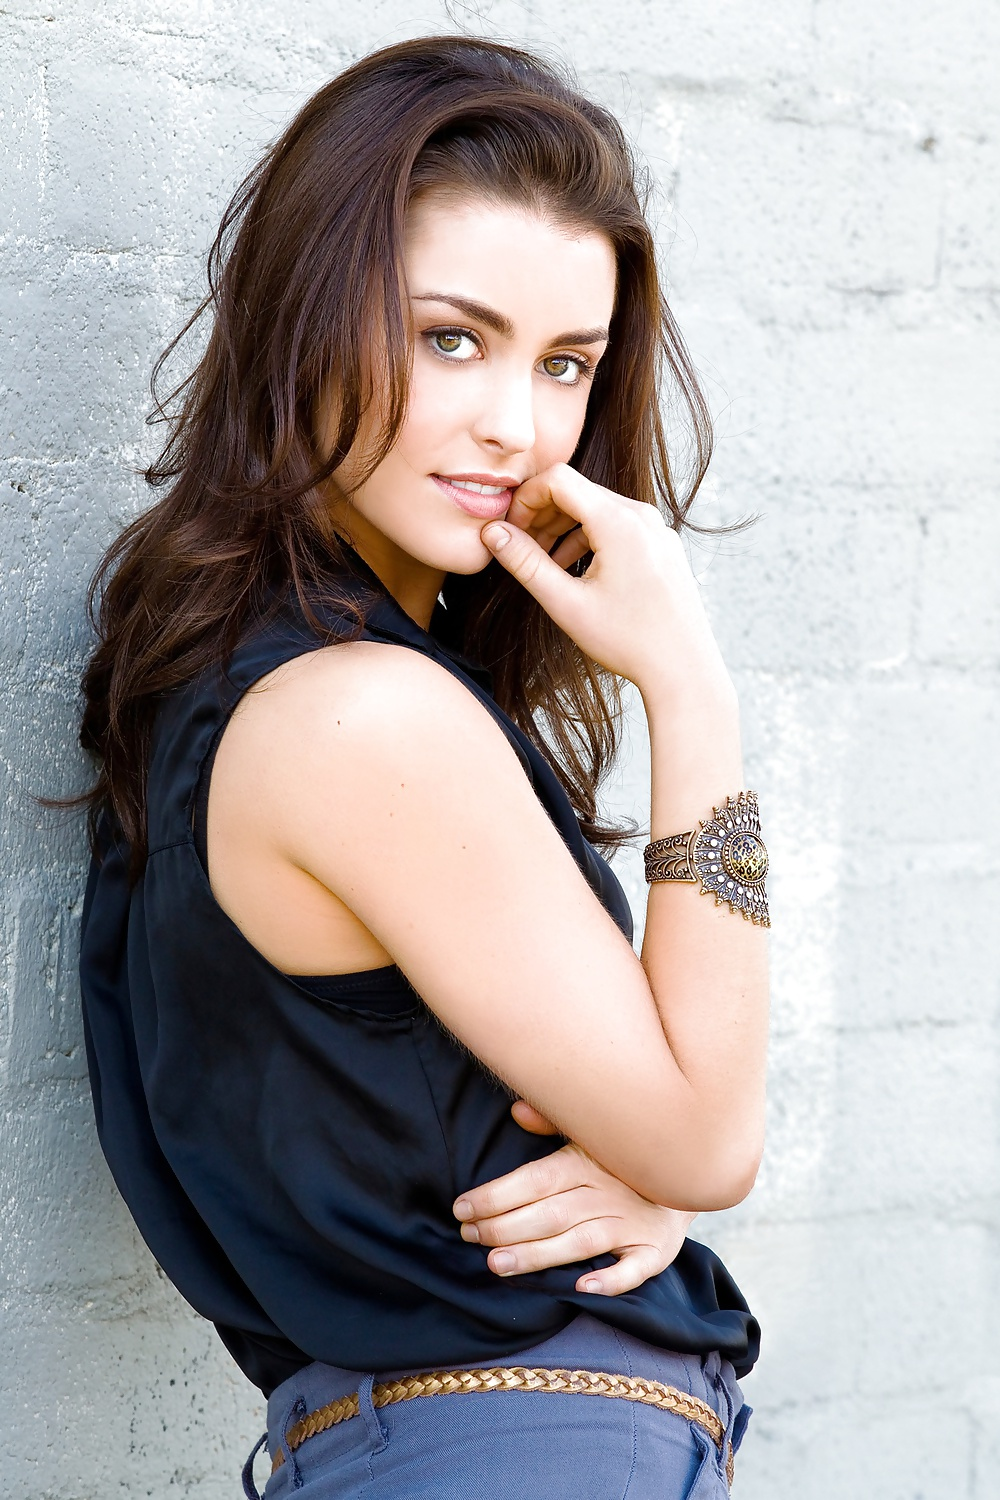 Kathryn mccormick porn xxx video